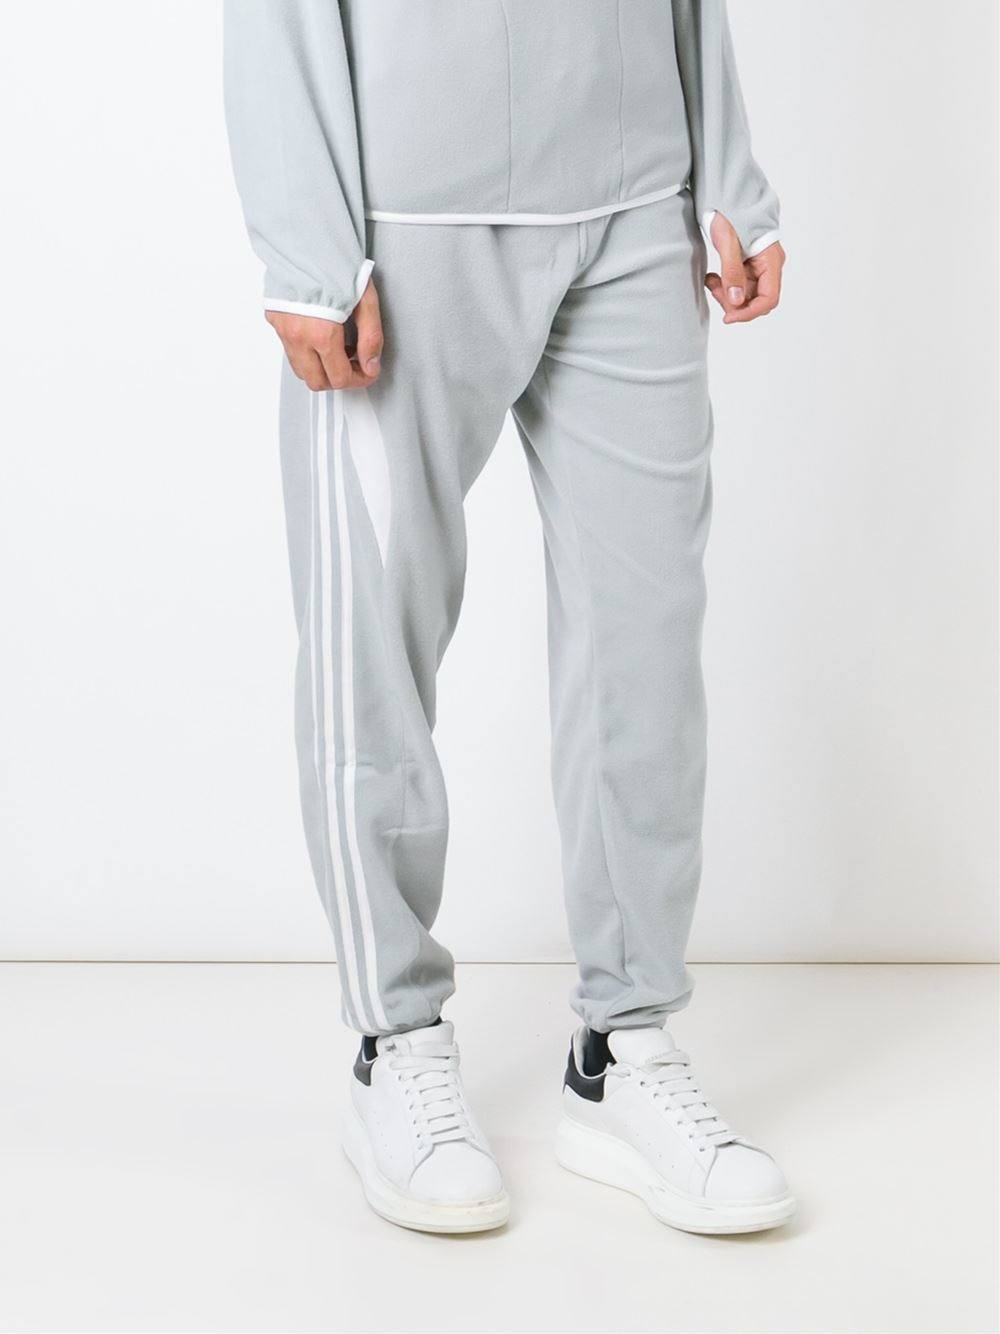 8adfb931 adidas Originals ' X Palace' Fleece Joggers in Gray for Men - Lyst